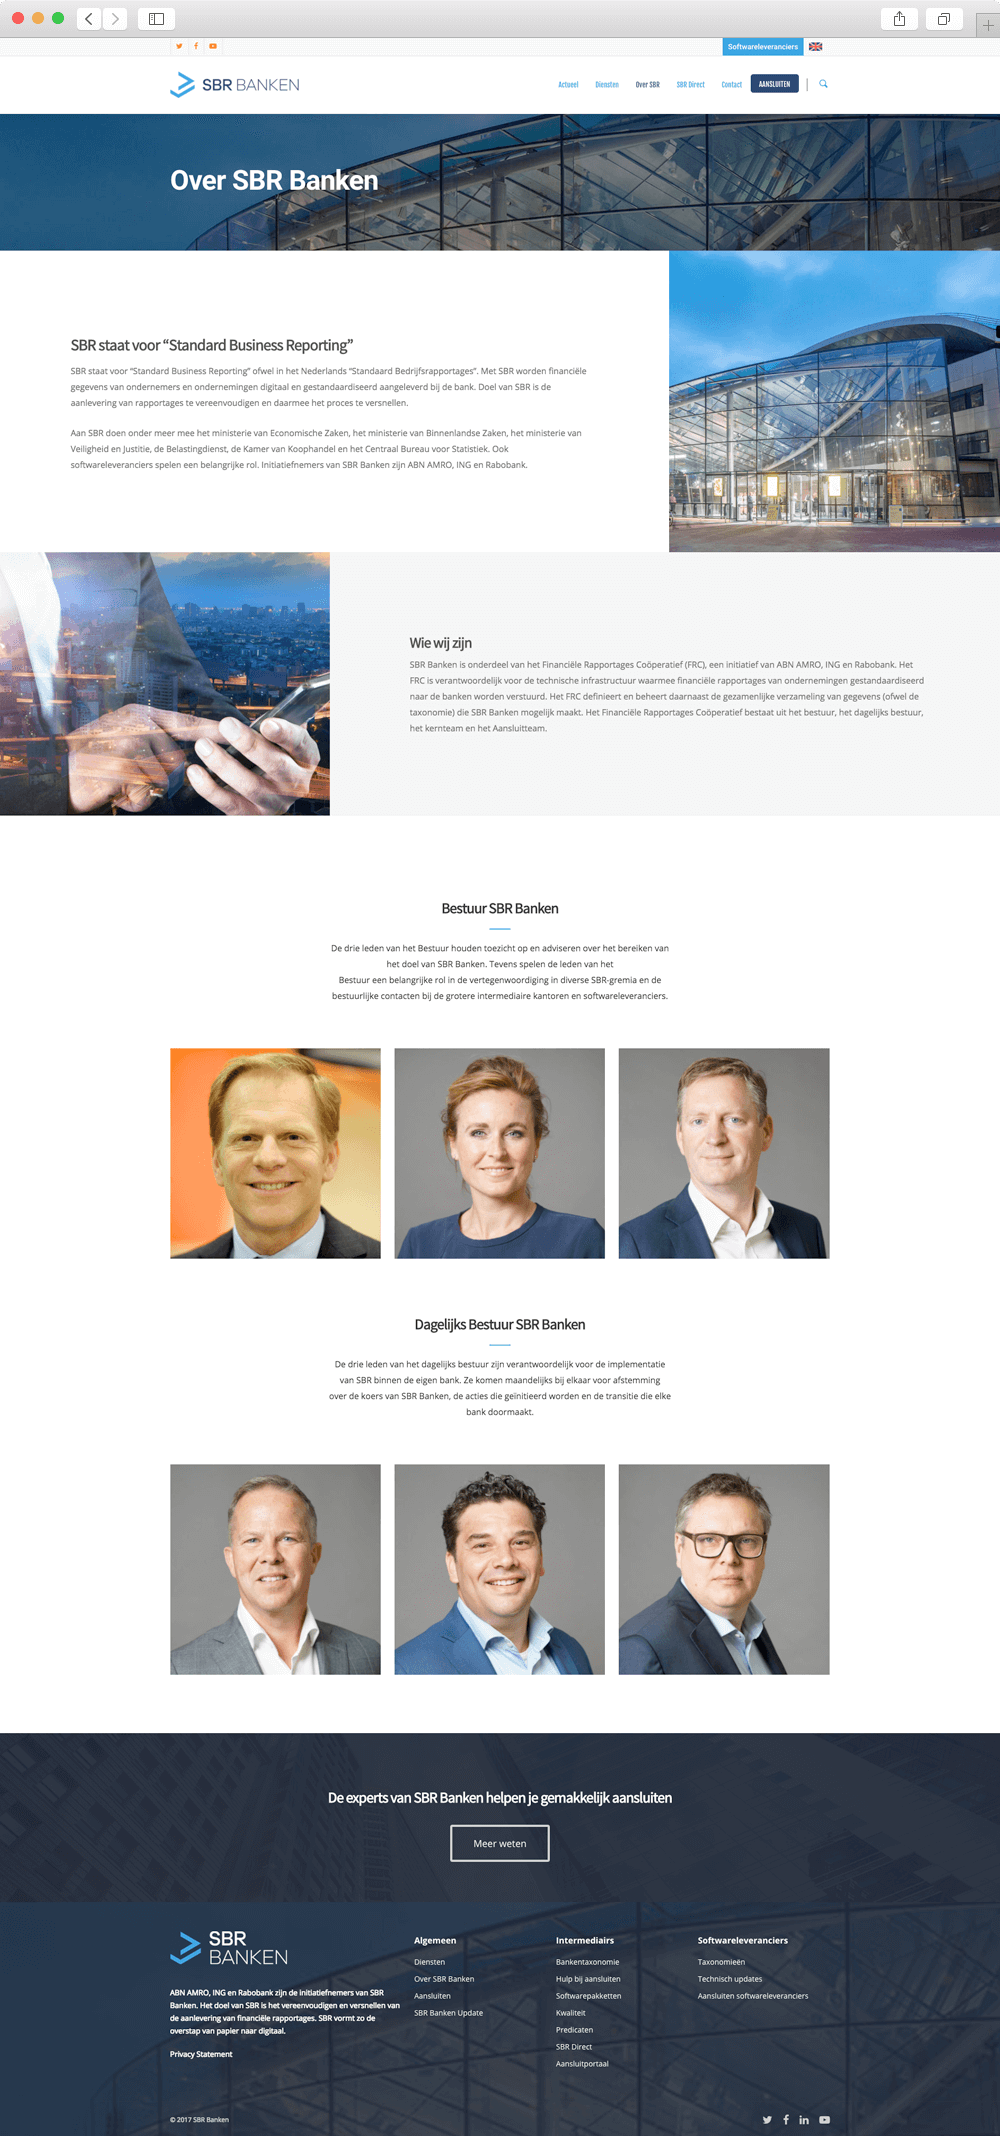 sbr_banken_page_green_creatives_03